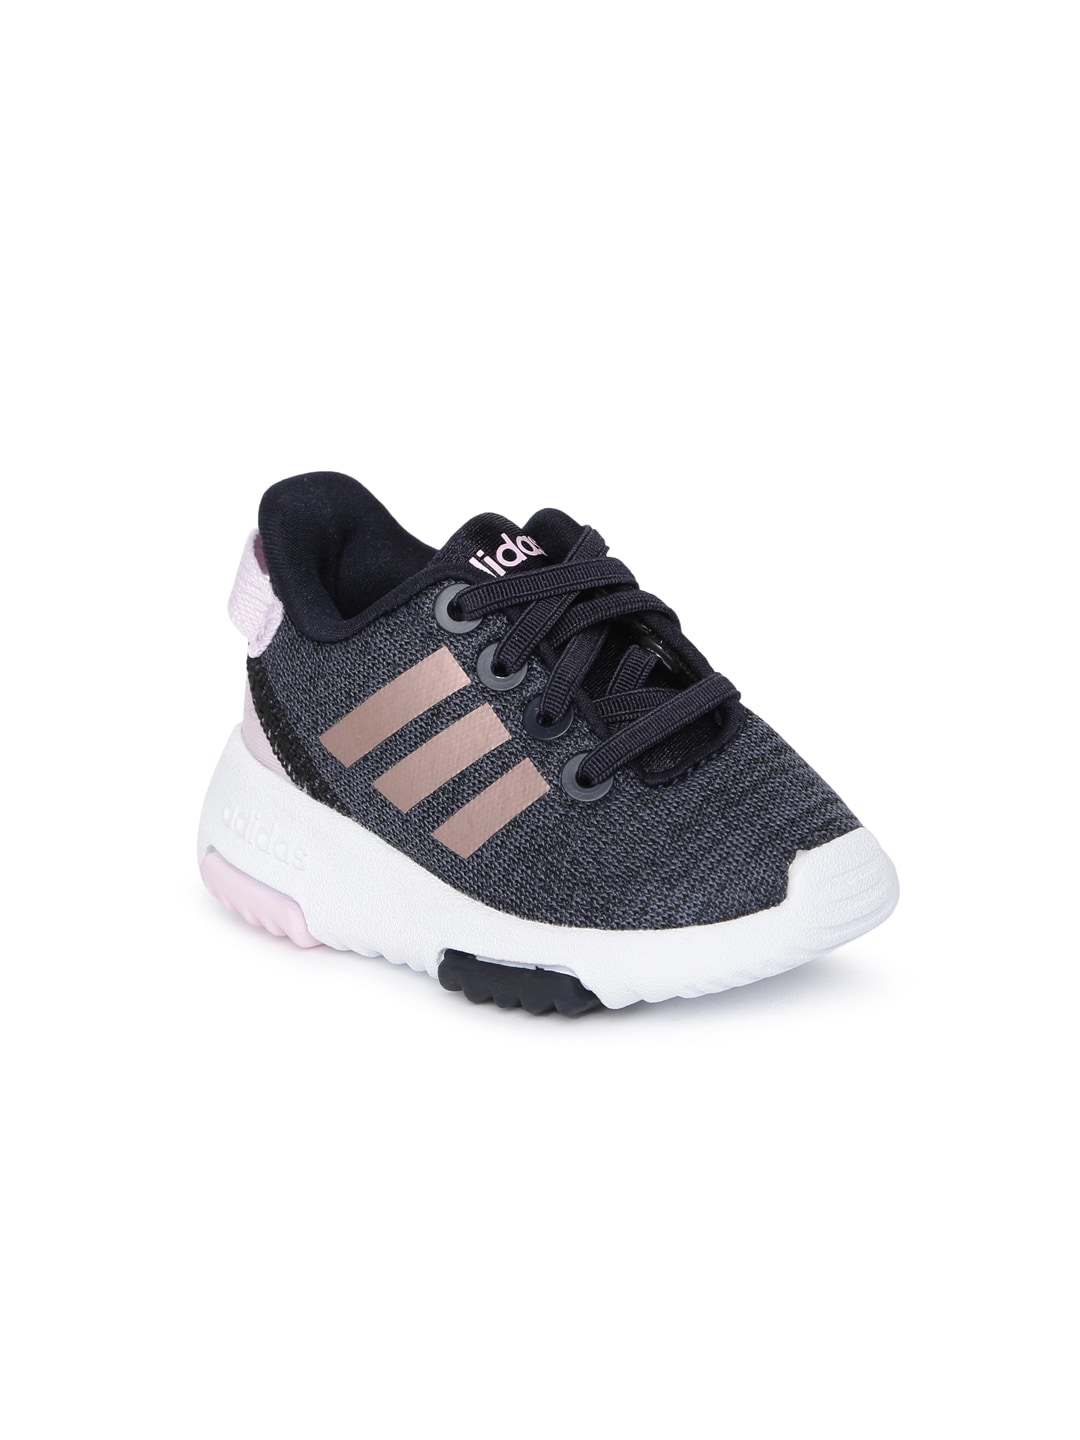 new arrival 399c5 4fcd4 Adidas Shoe Casual Flats - Buy Adidas Shoe Casual Flats online in India